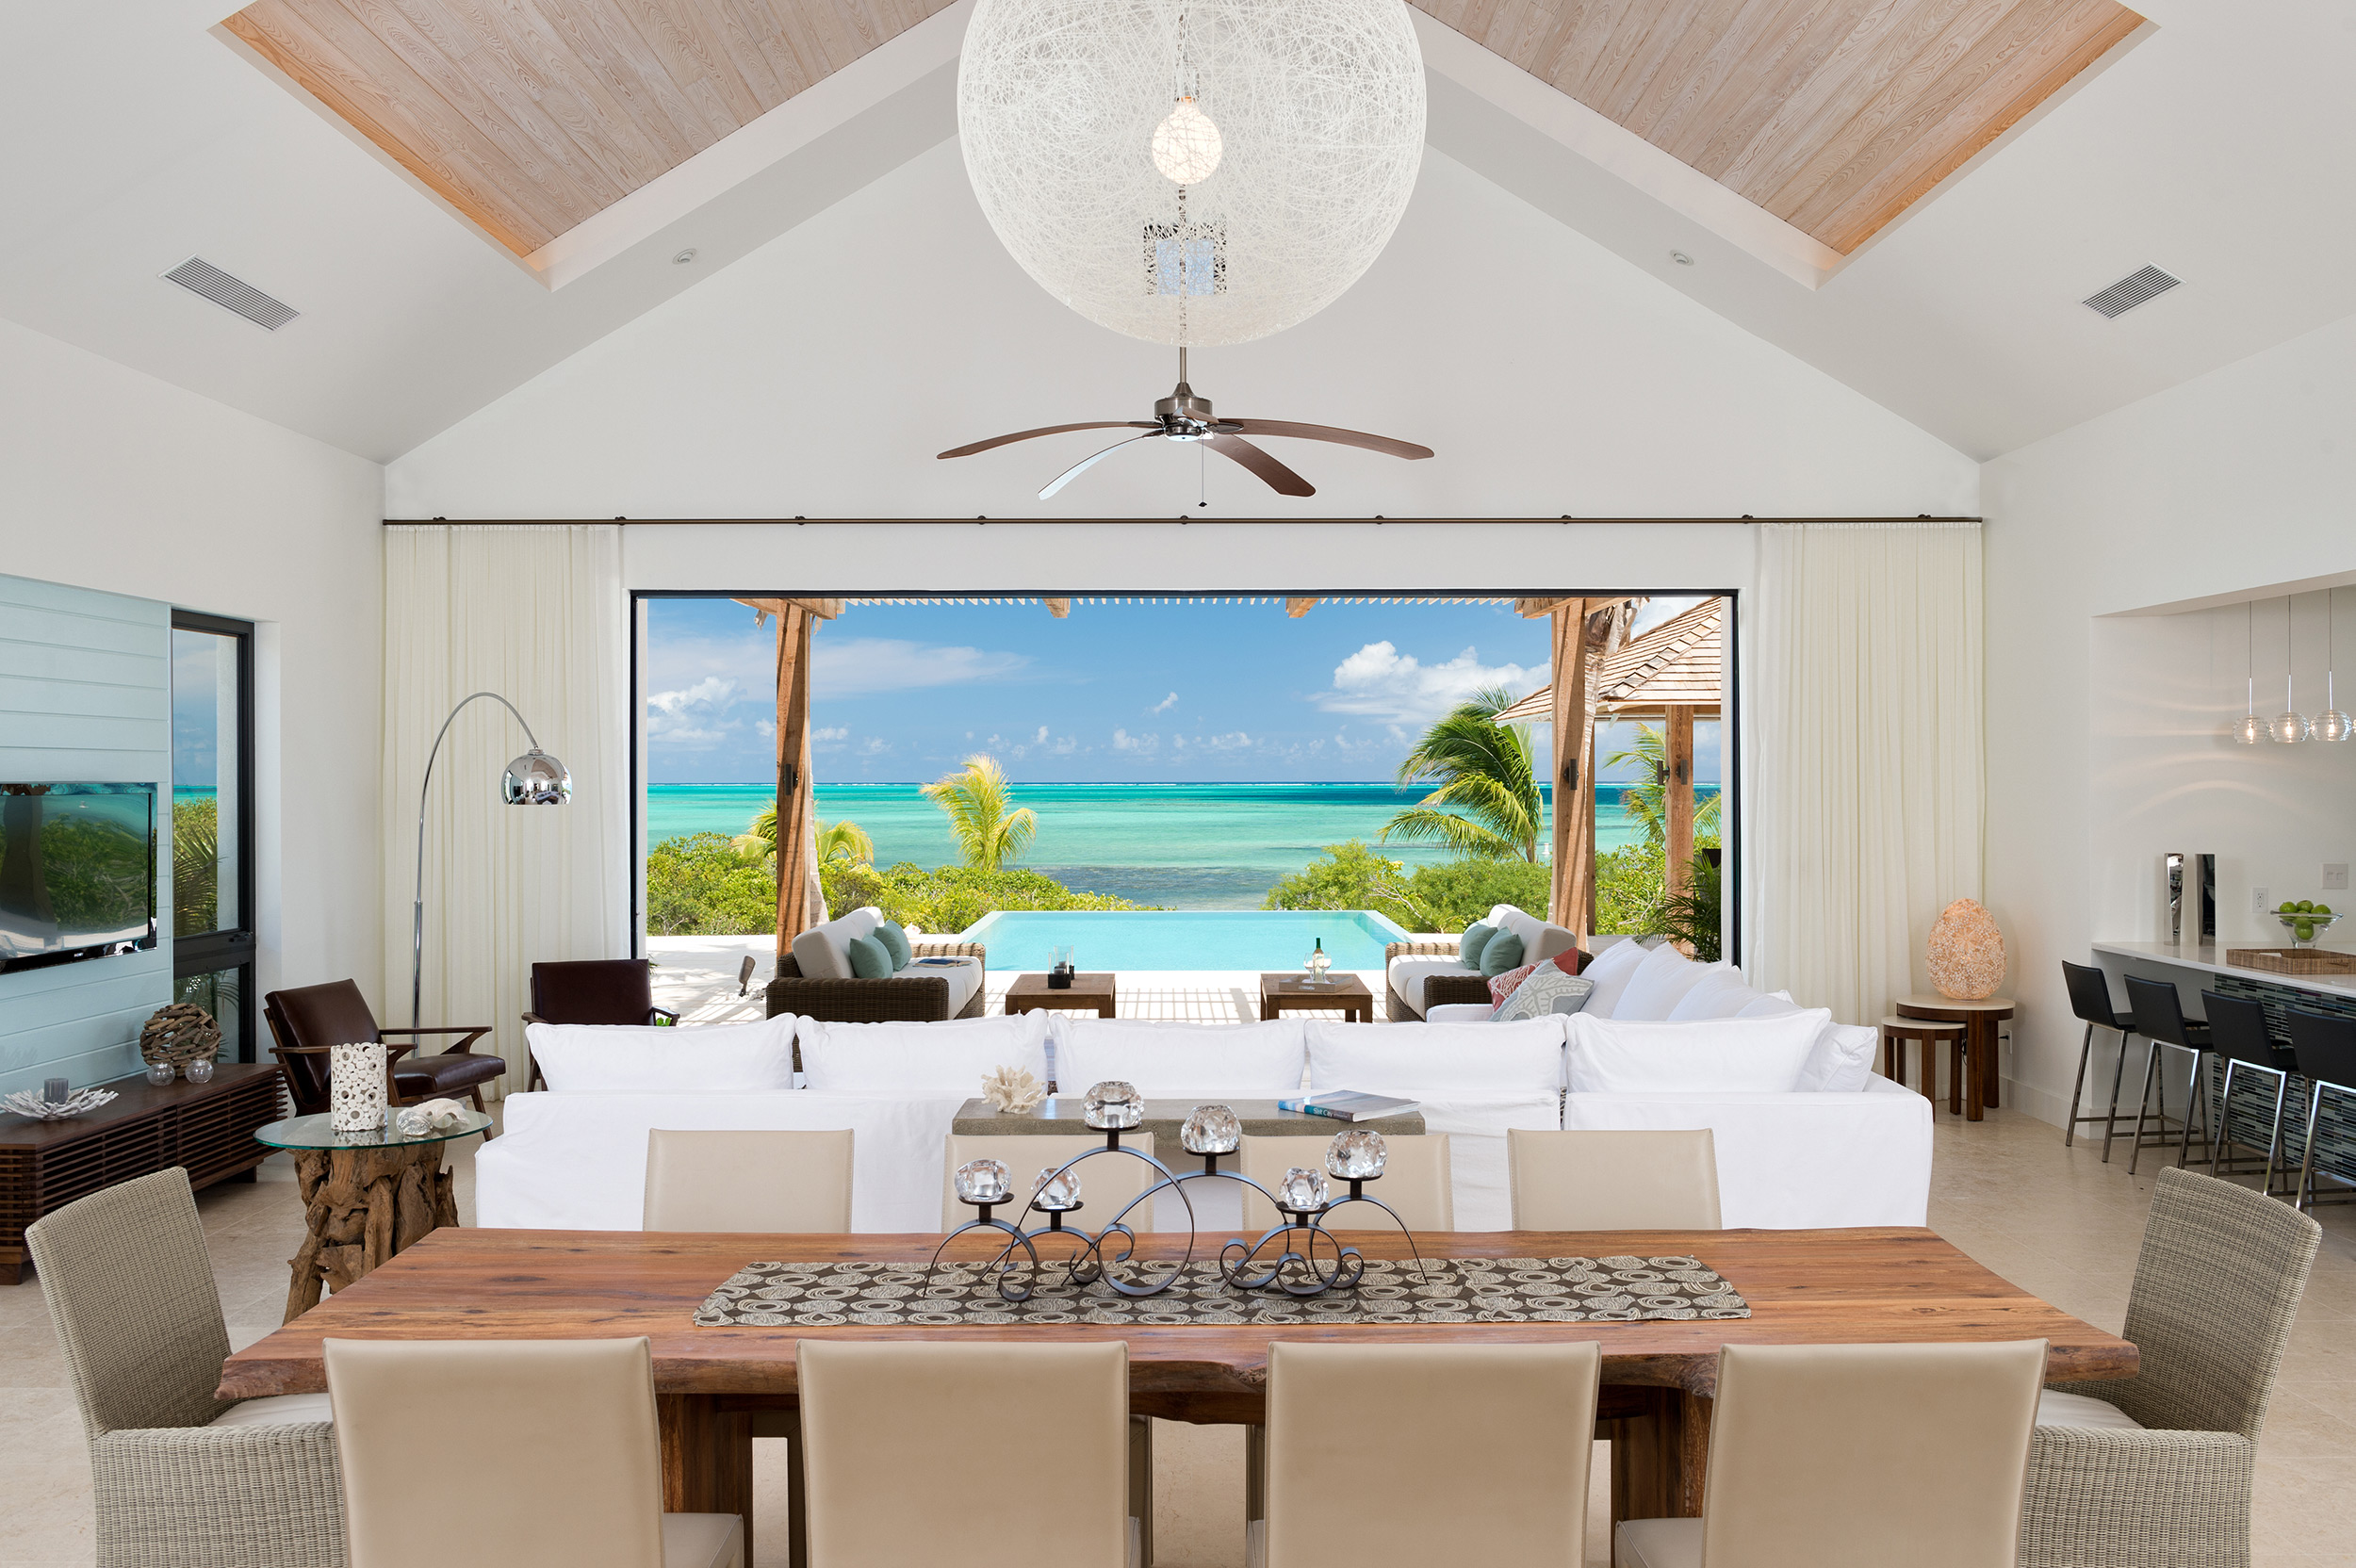 Castaway - view of the living and dining areas with the ocean beyond